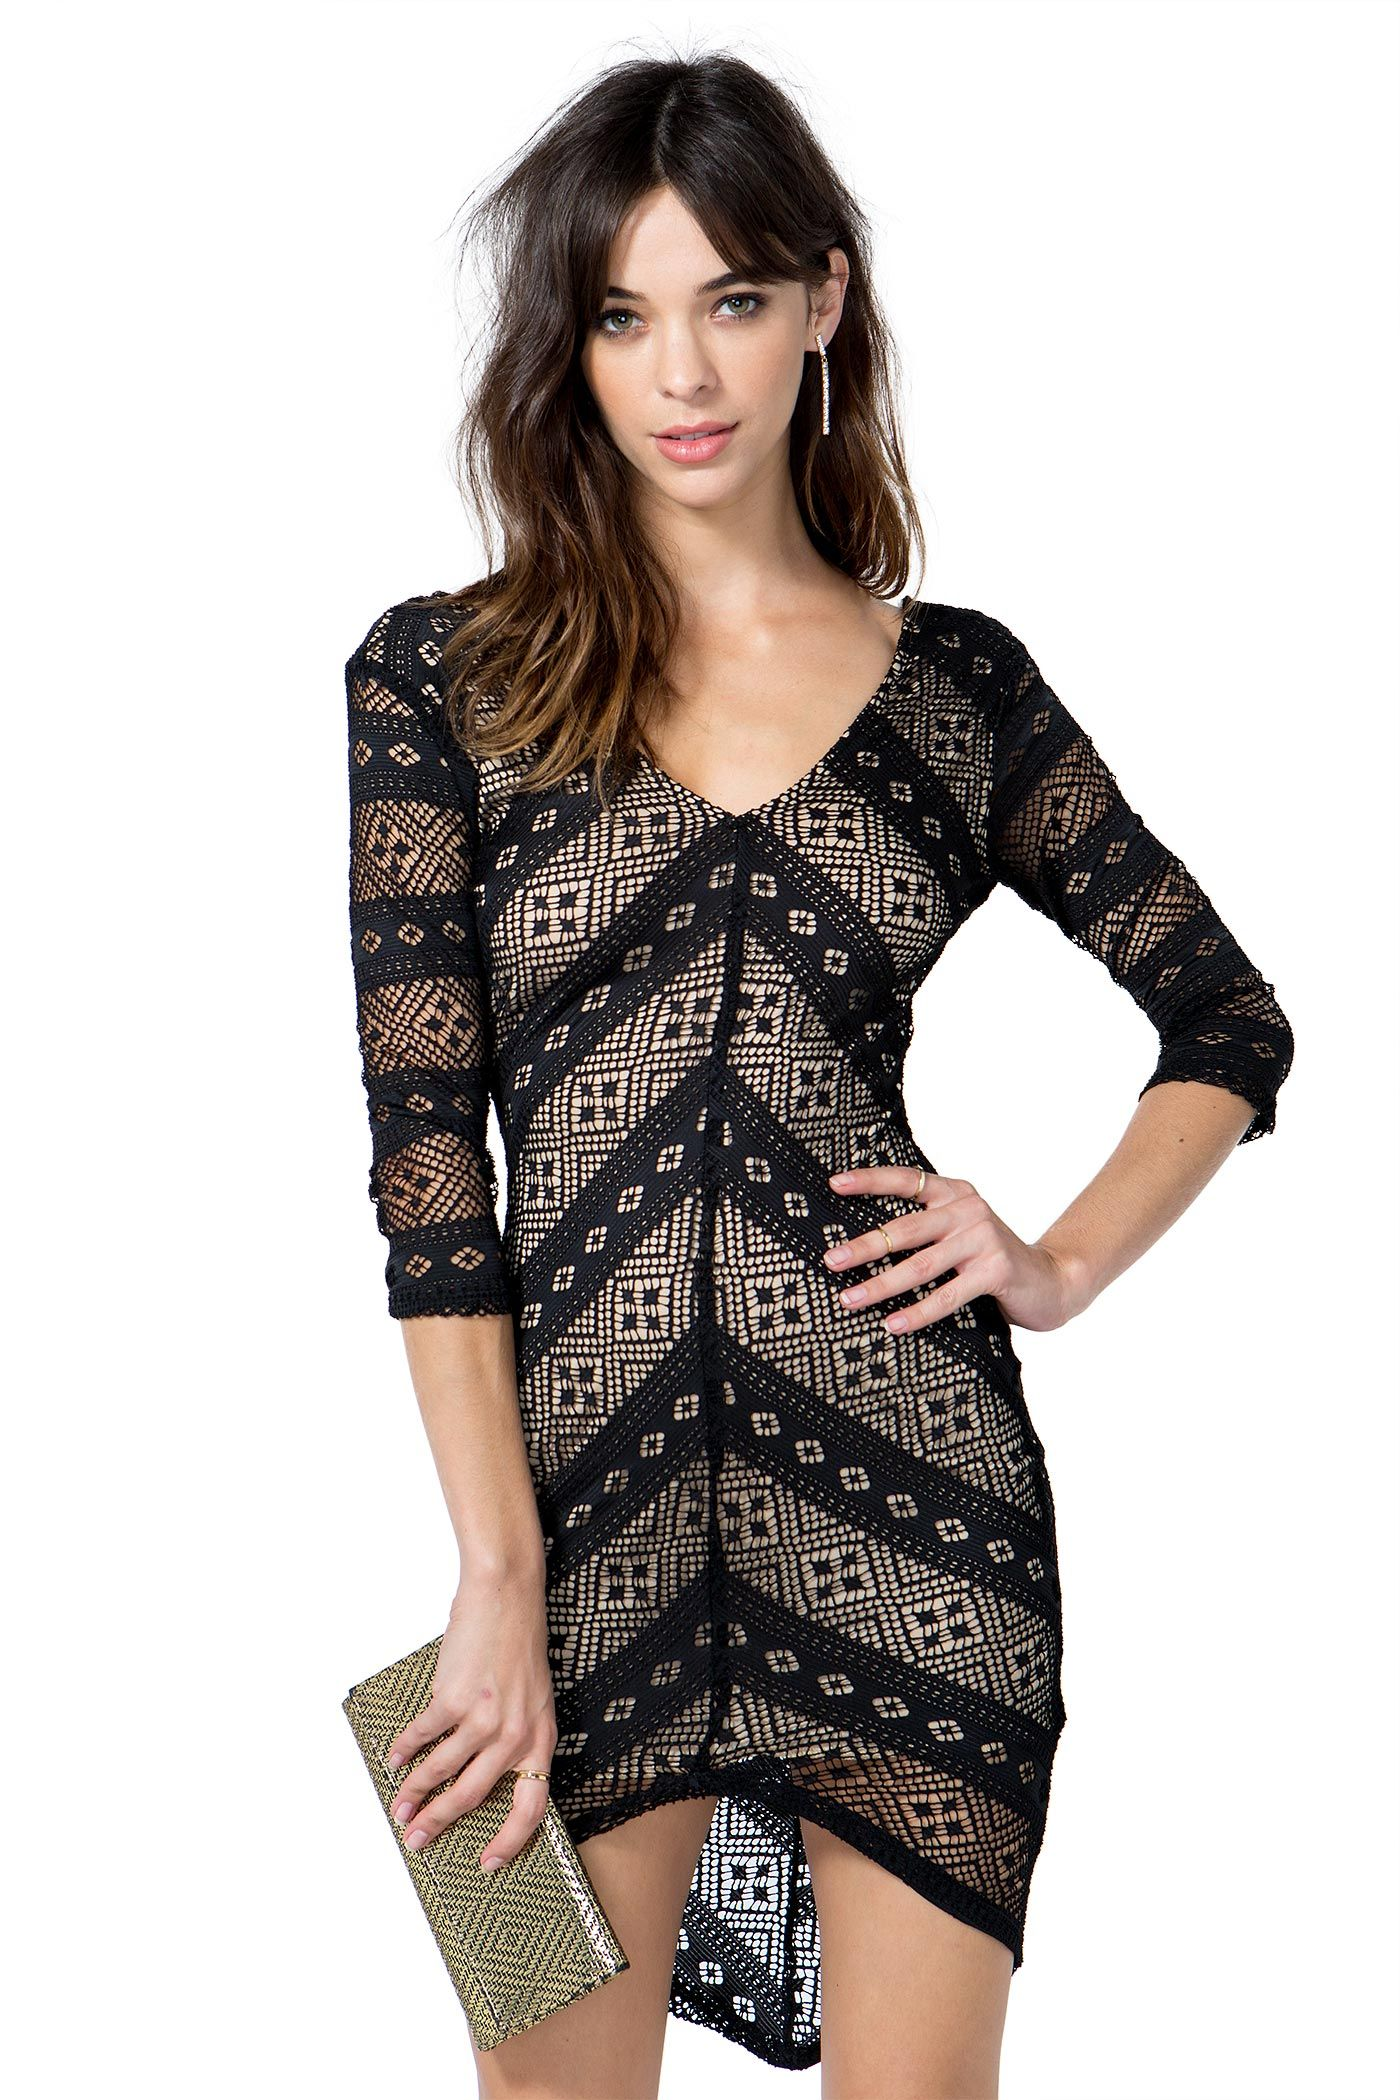 V neck black lace dress  A dreamy black lace dress featuring an allover chevron pattern and